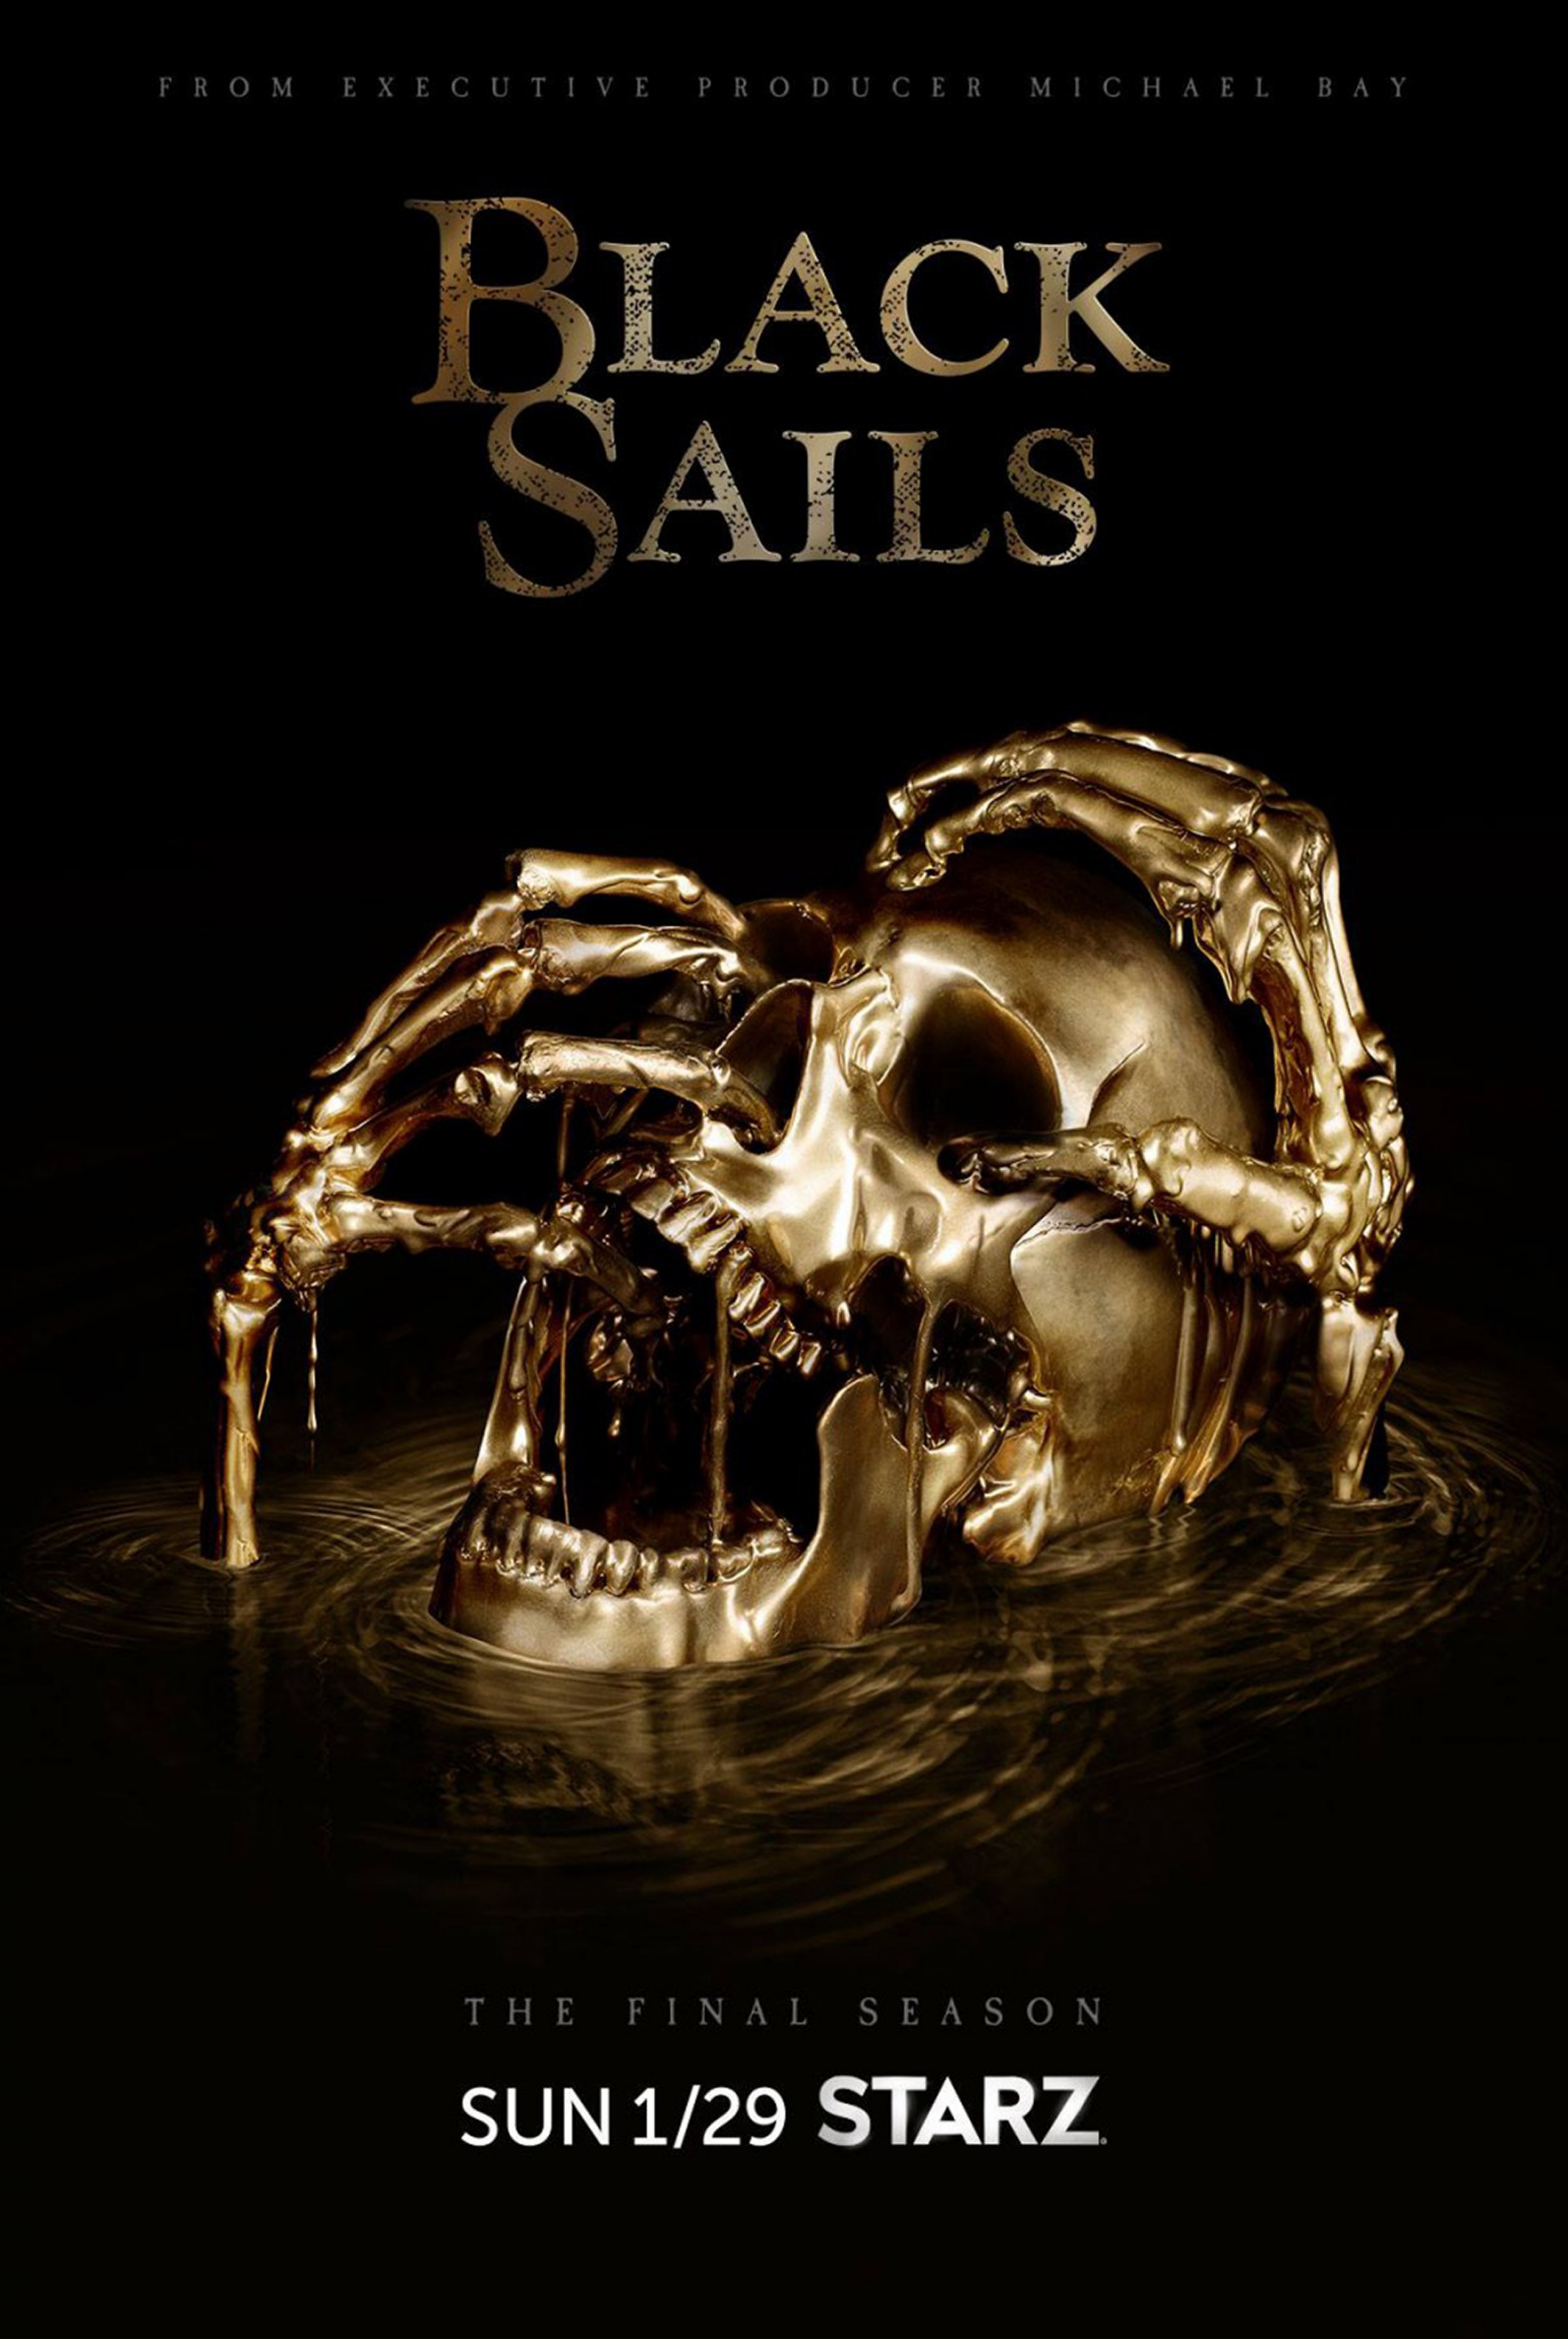 Thumbnail for Black Sails The Final Season One Sheet